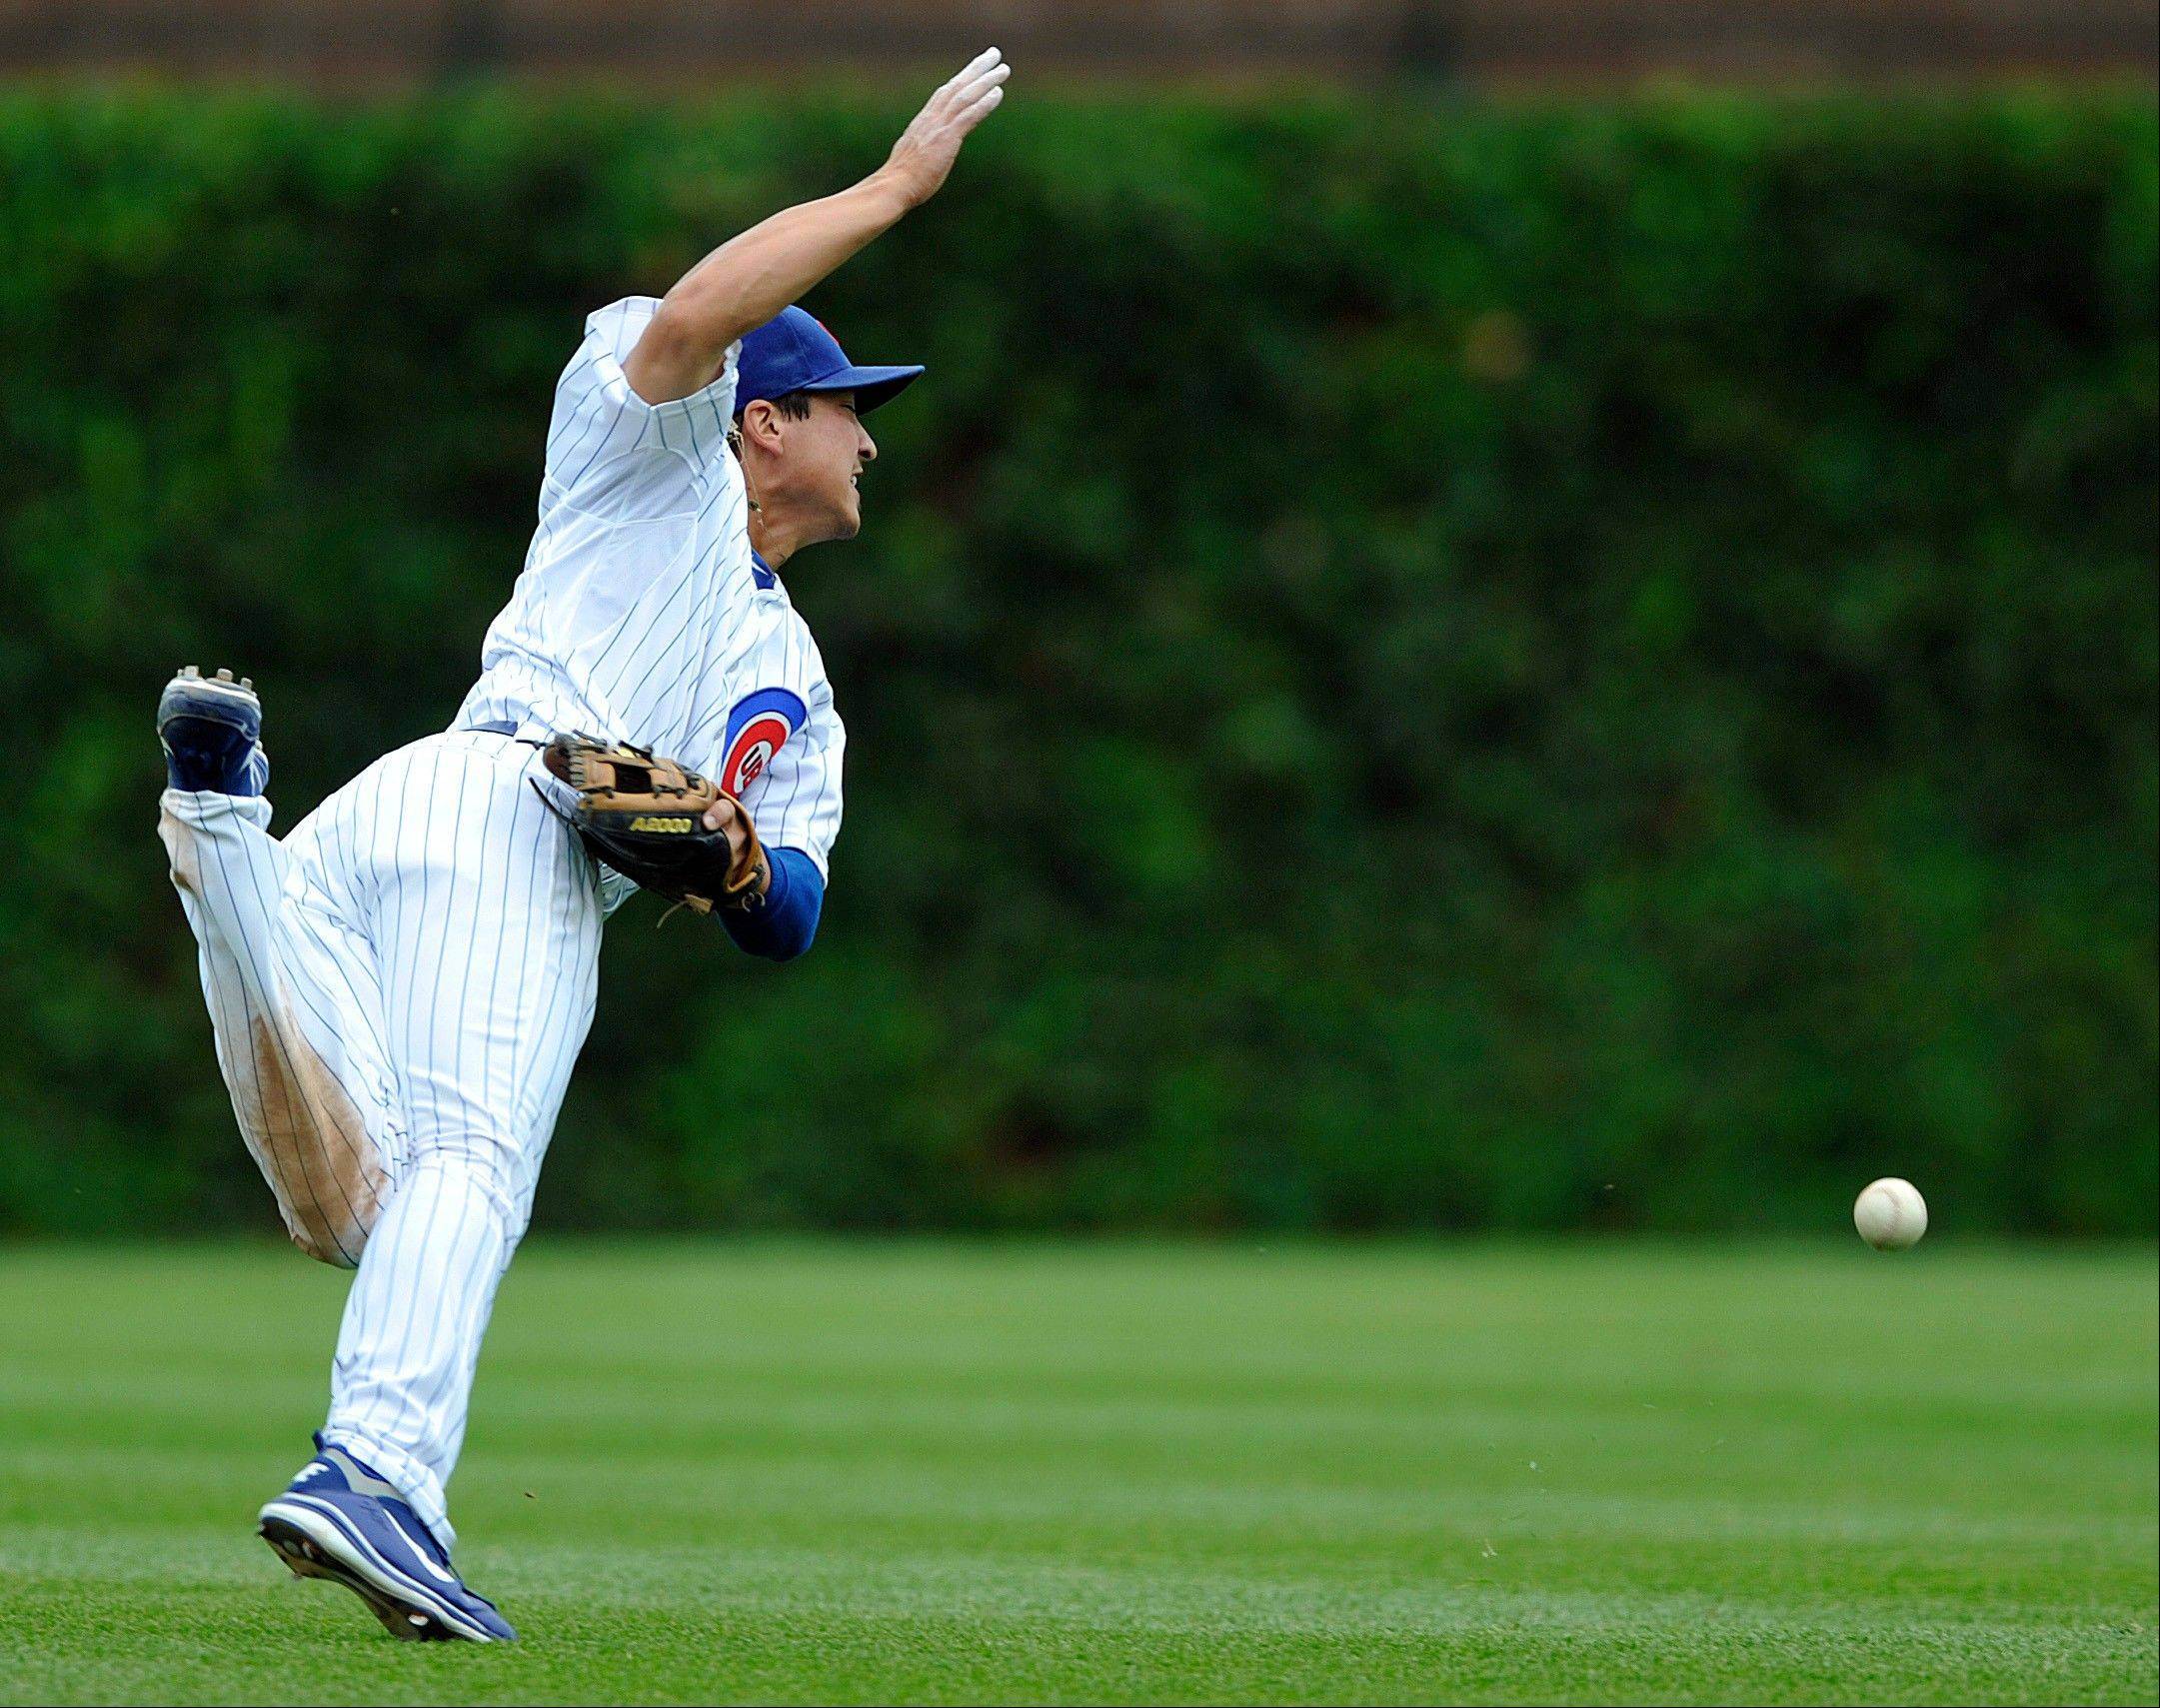 Cubs' offense stuck in reverse